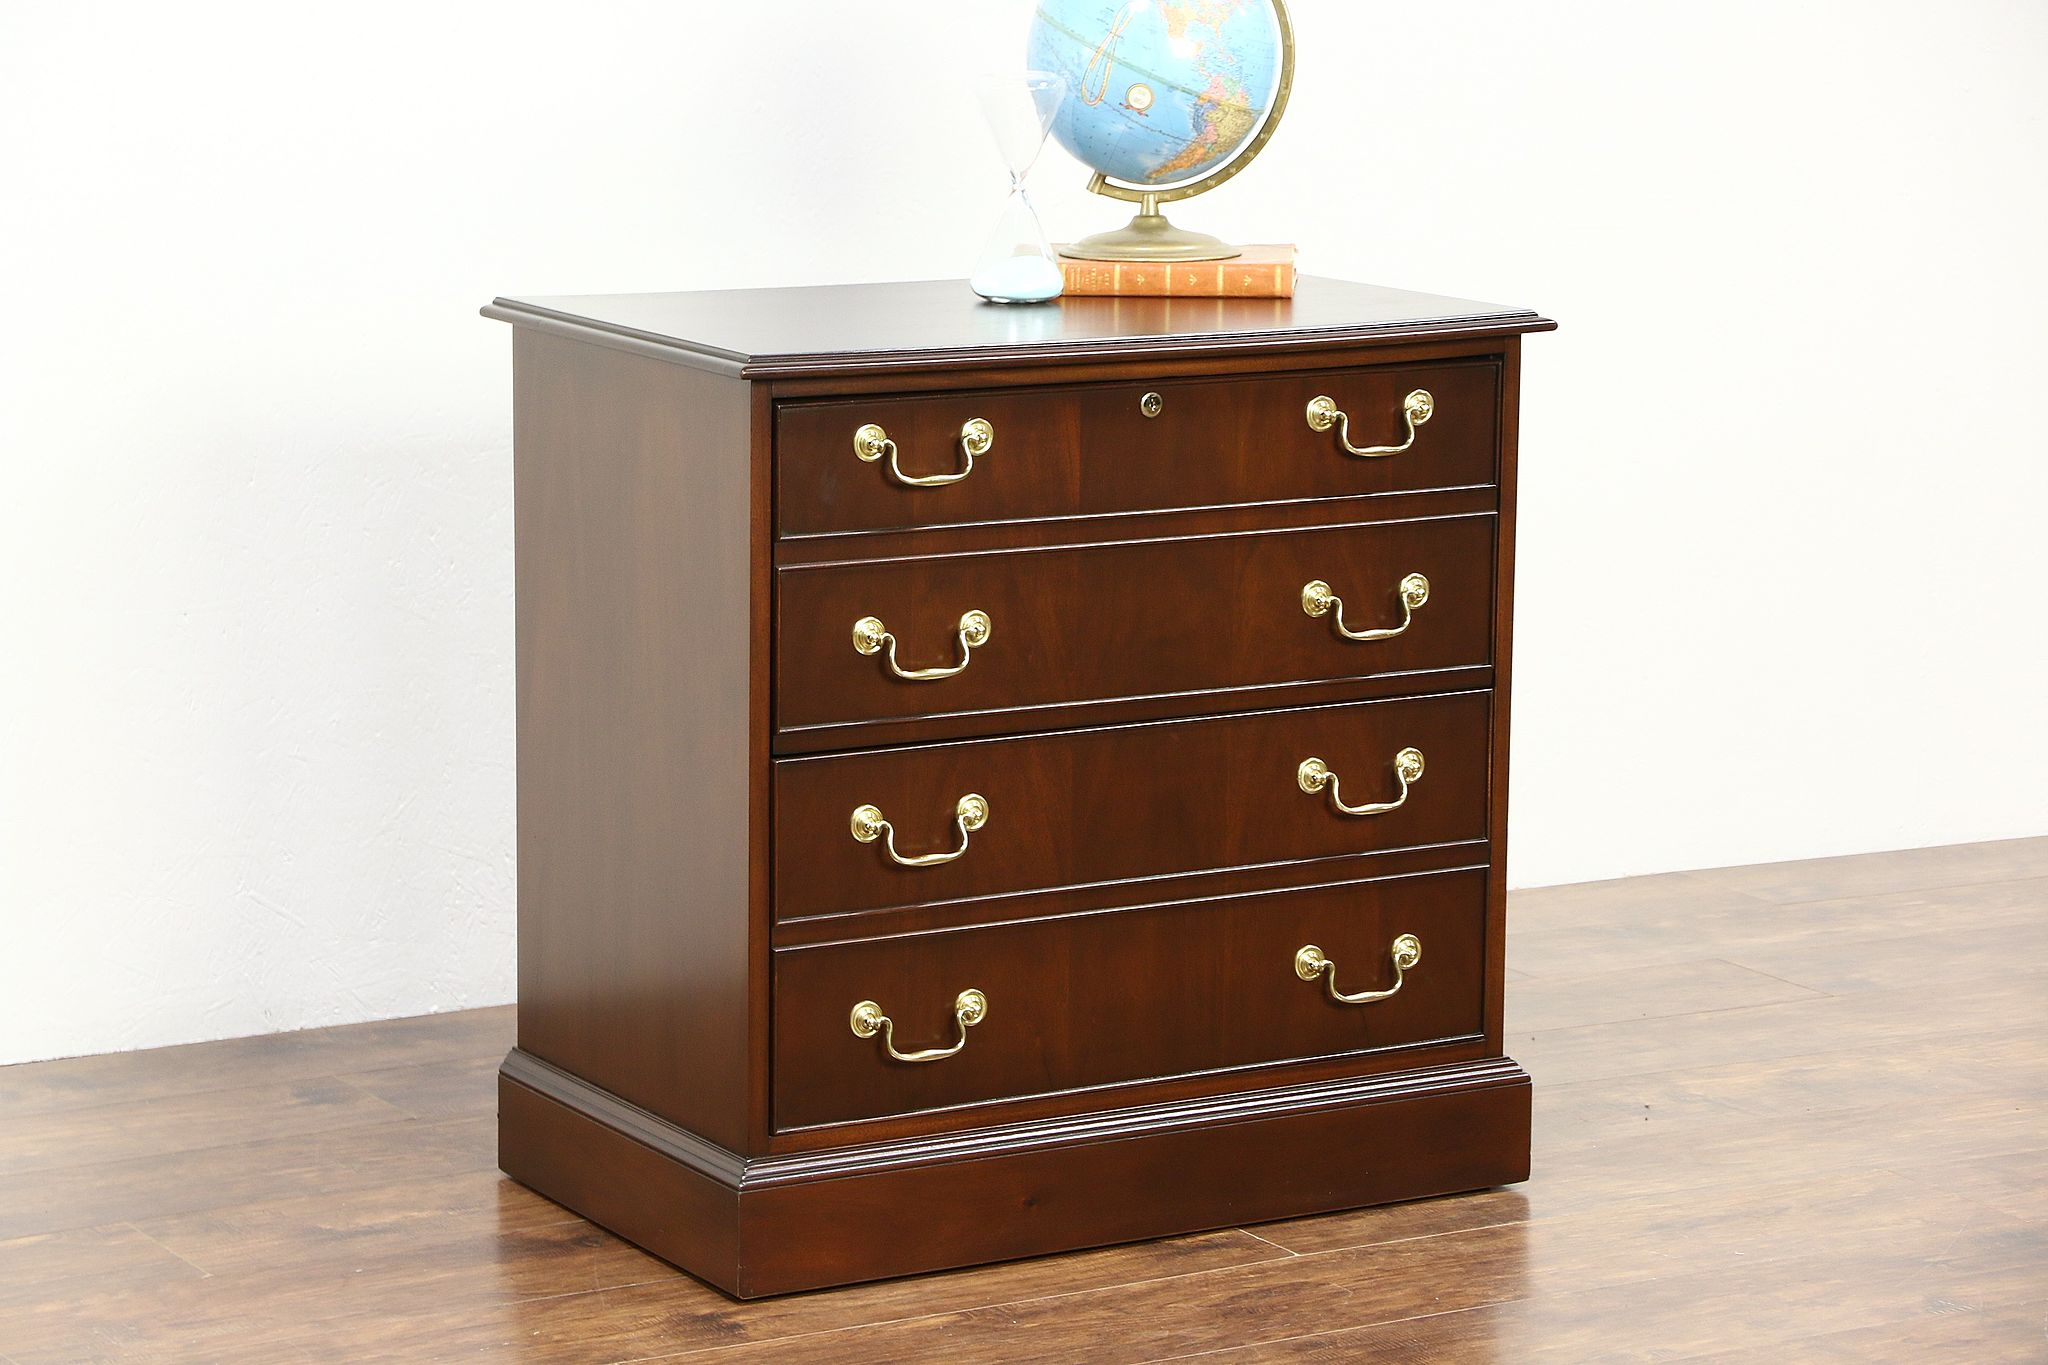 decorative furniture full of wood home wooden door filing cabinets office with metal personal lockable the lateral cabinet for mission legal file drawer storage drawers size